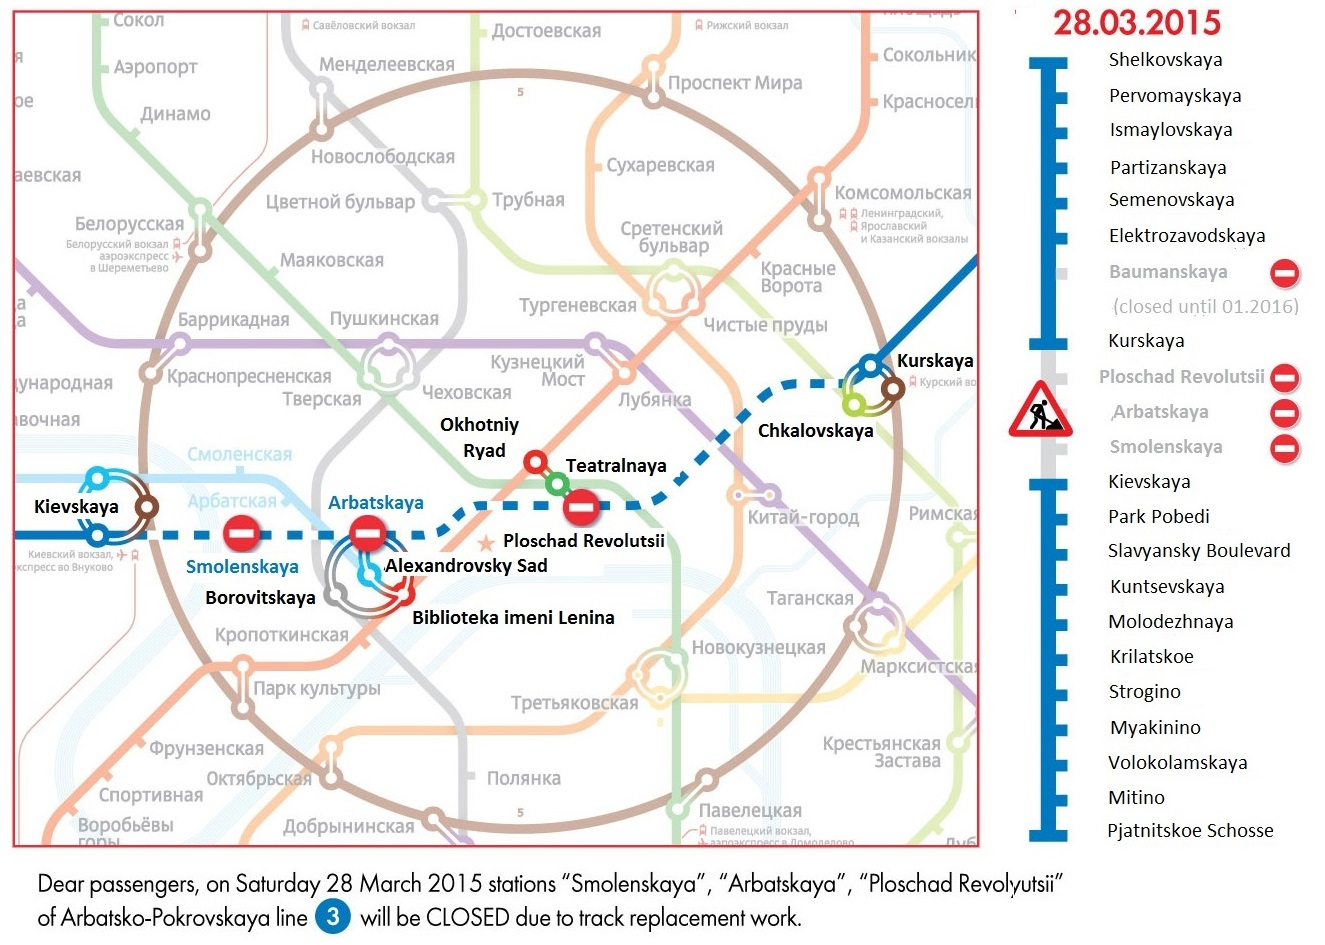 Find out the schedule of opening and closing stations and transitions of the Moscow Metro